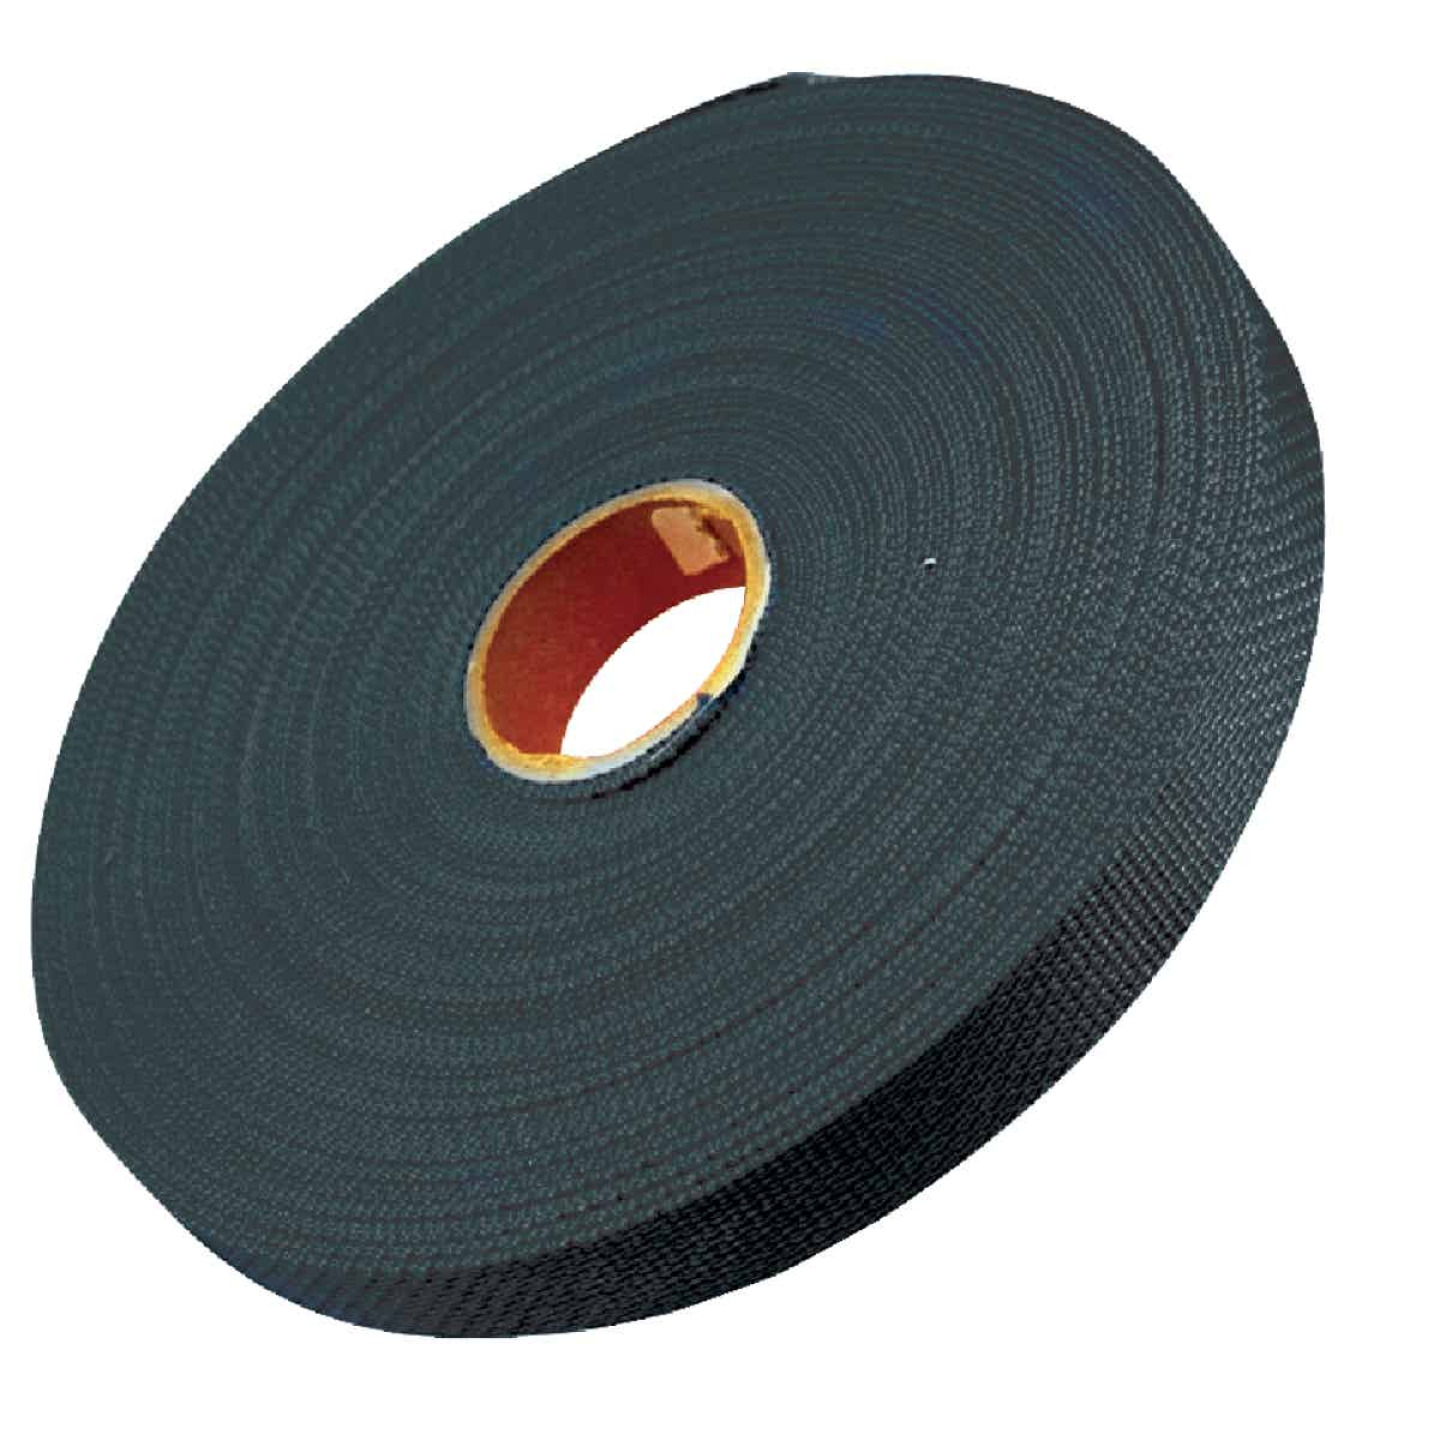 TURF 1 In. x 300 Ft. Black Light-Duty Polypropylene Strapping Image 1